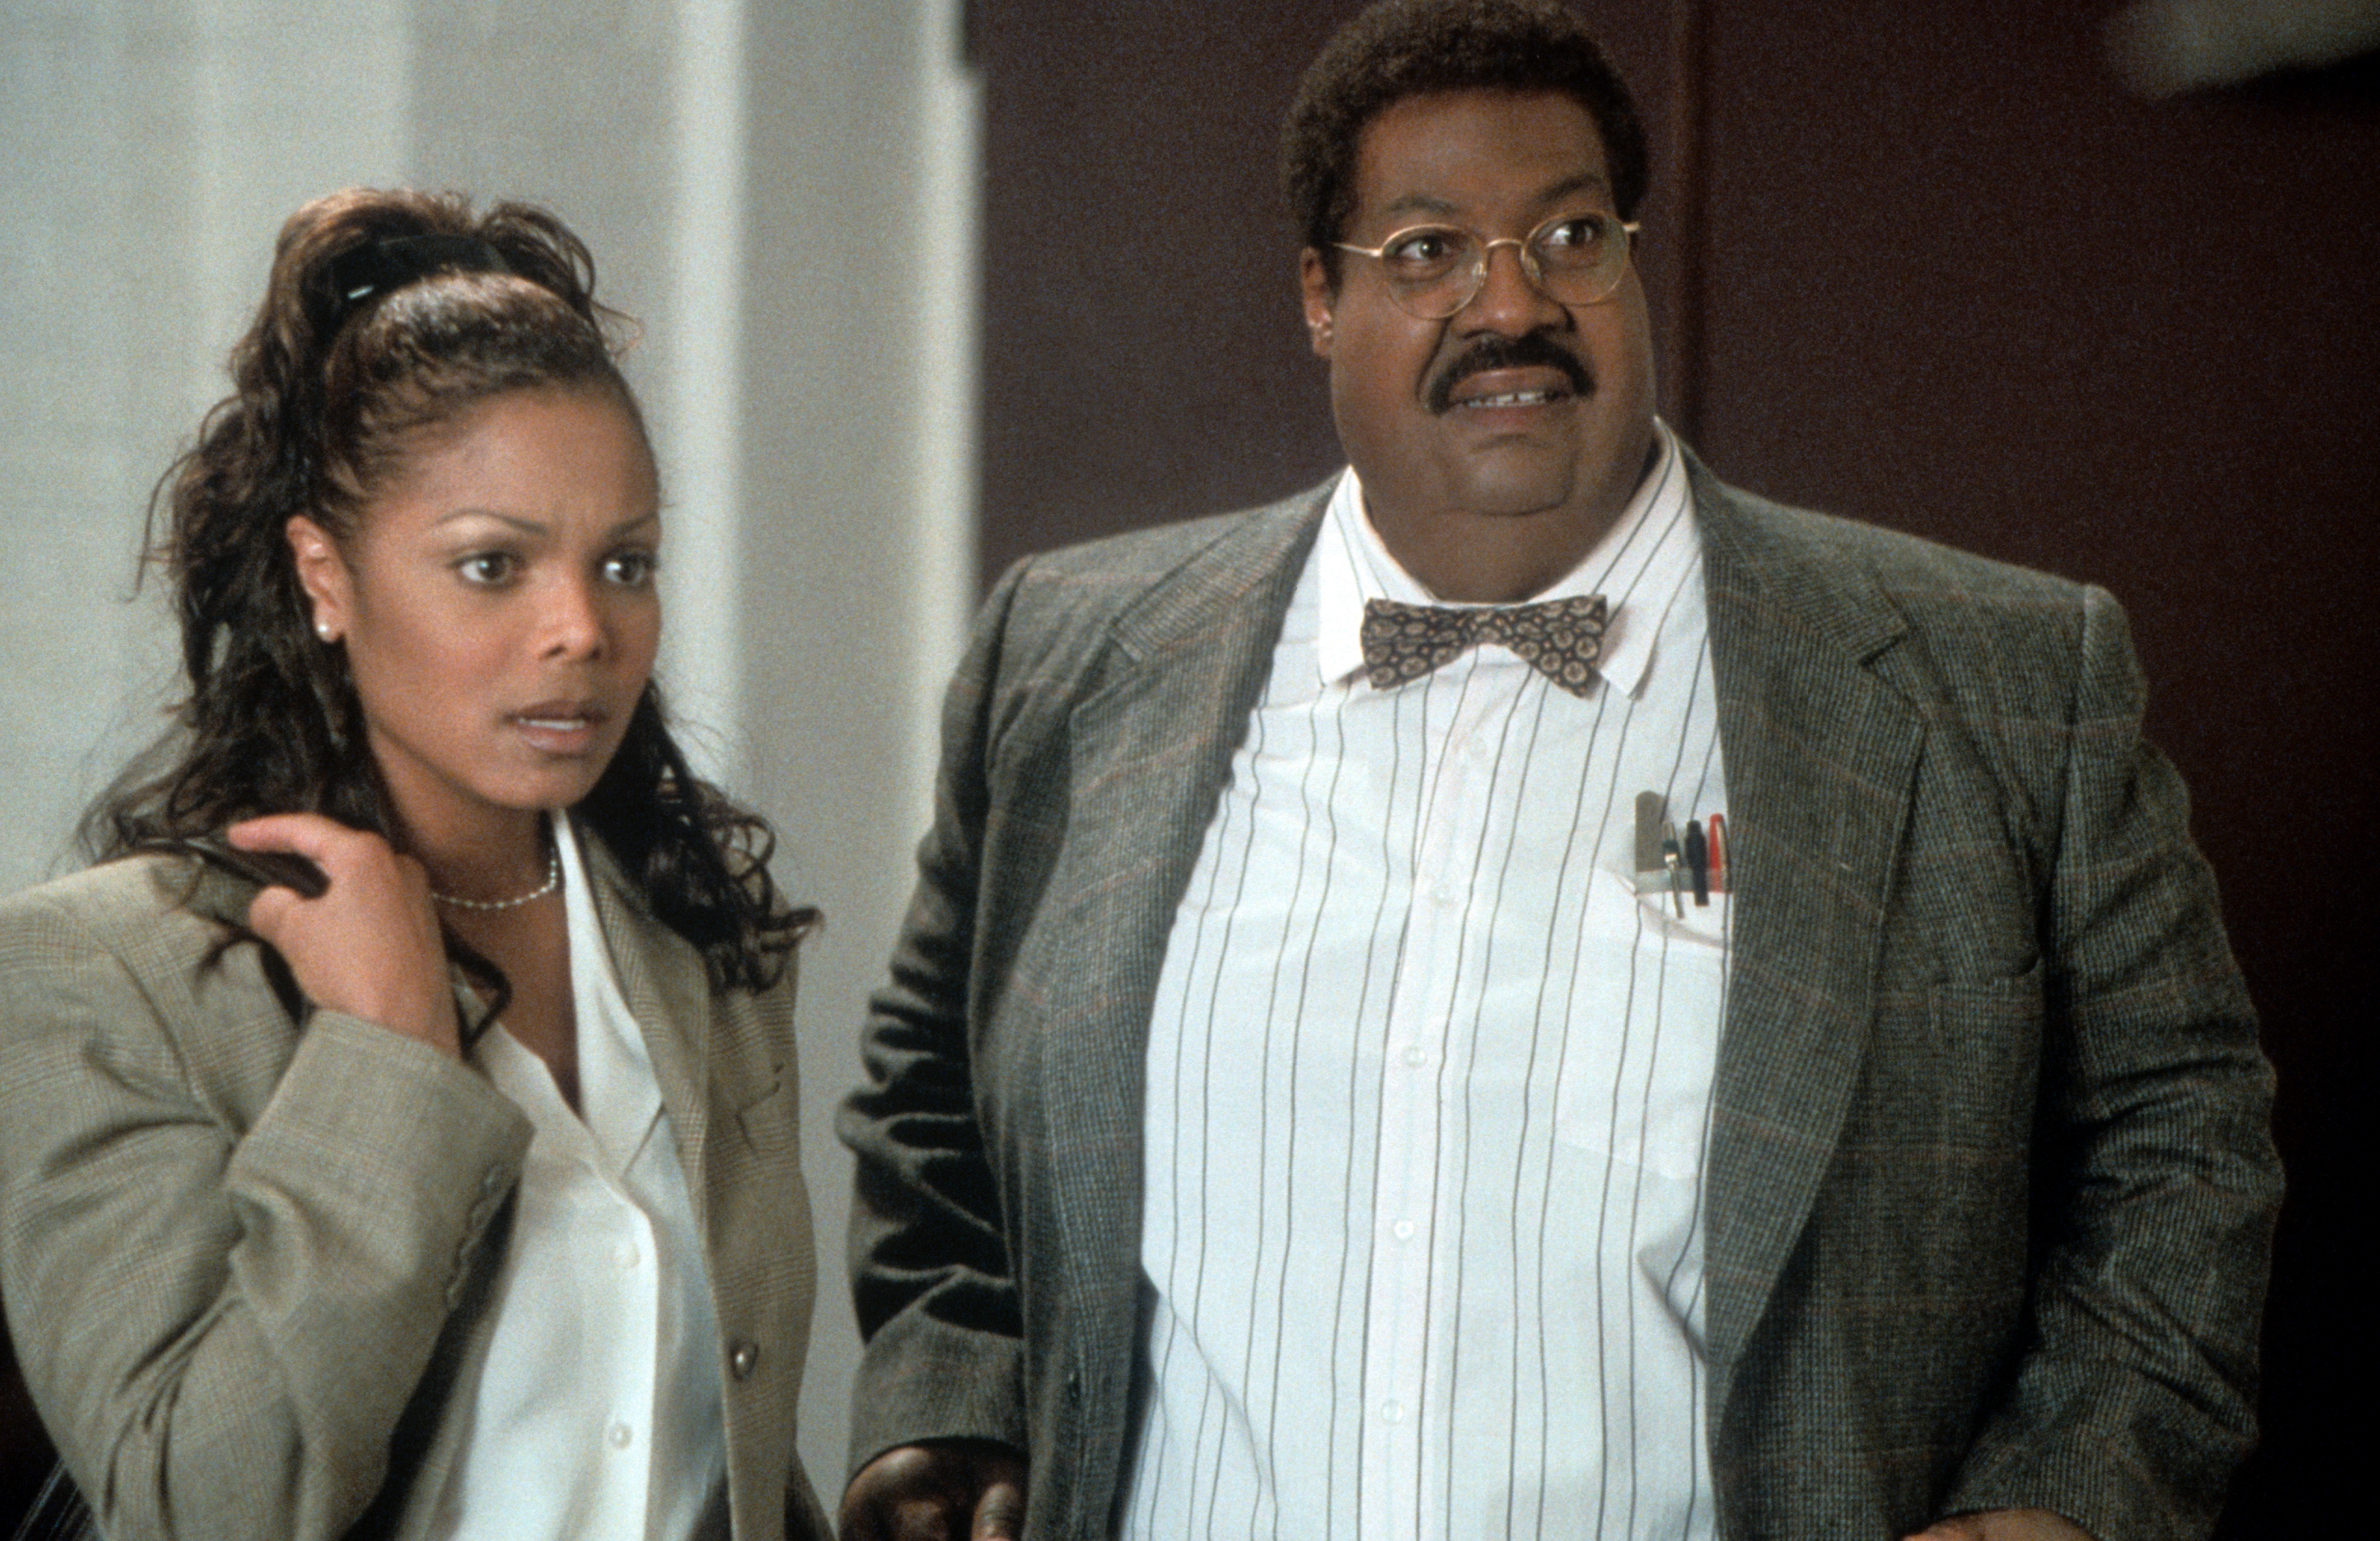 Janet Jackson And Eddie Murphy In 'Nutty Professor II: The Klumps'